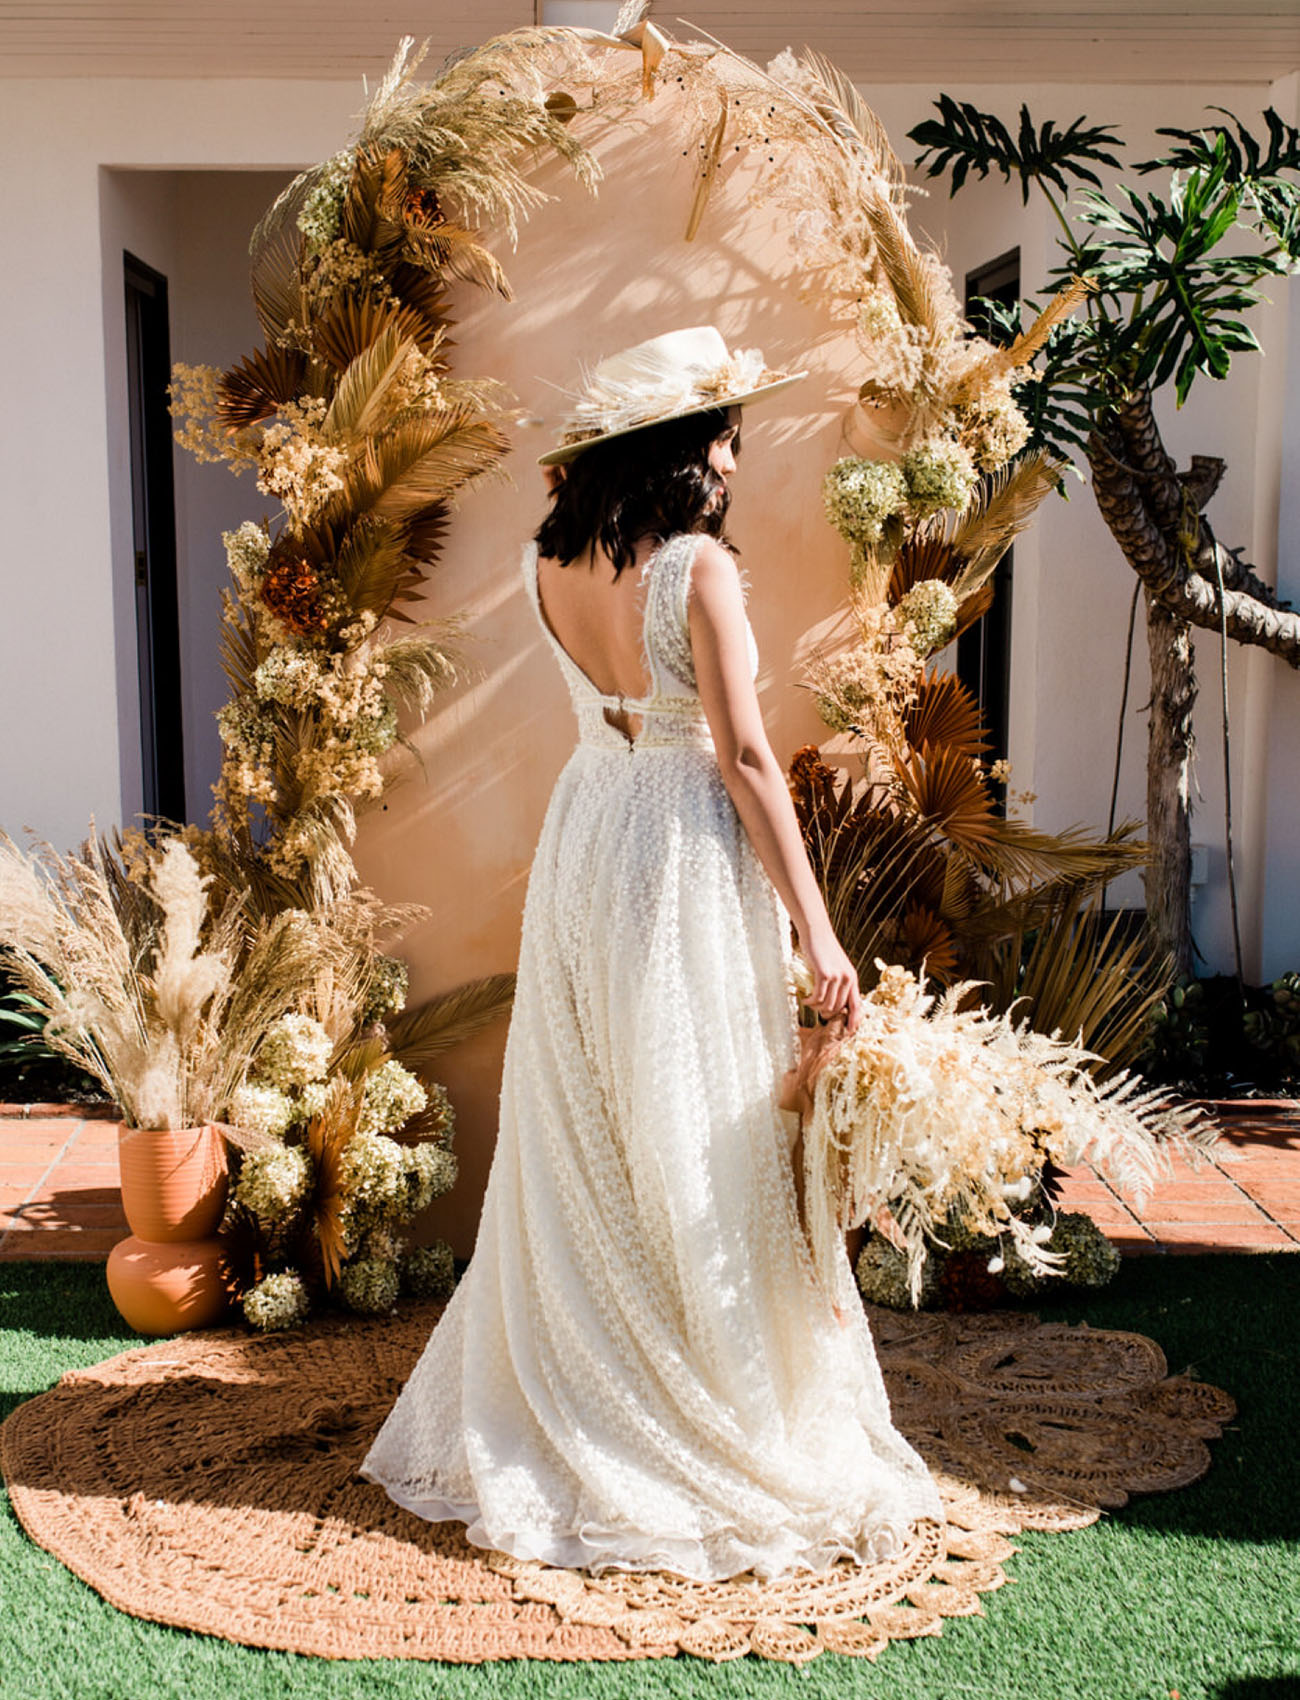 The bride was wearing a textural A line wedding dress with a plunging neckline and a cutout back